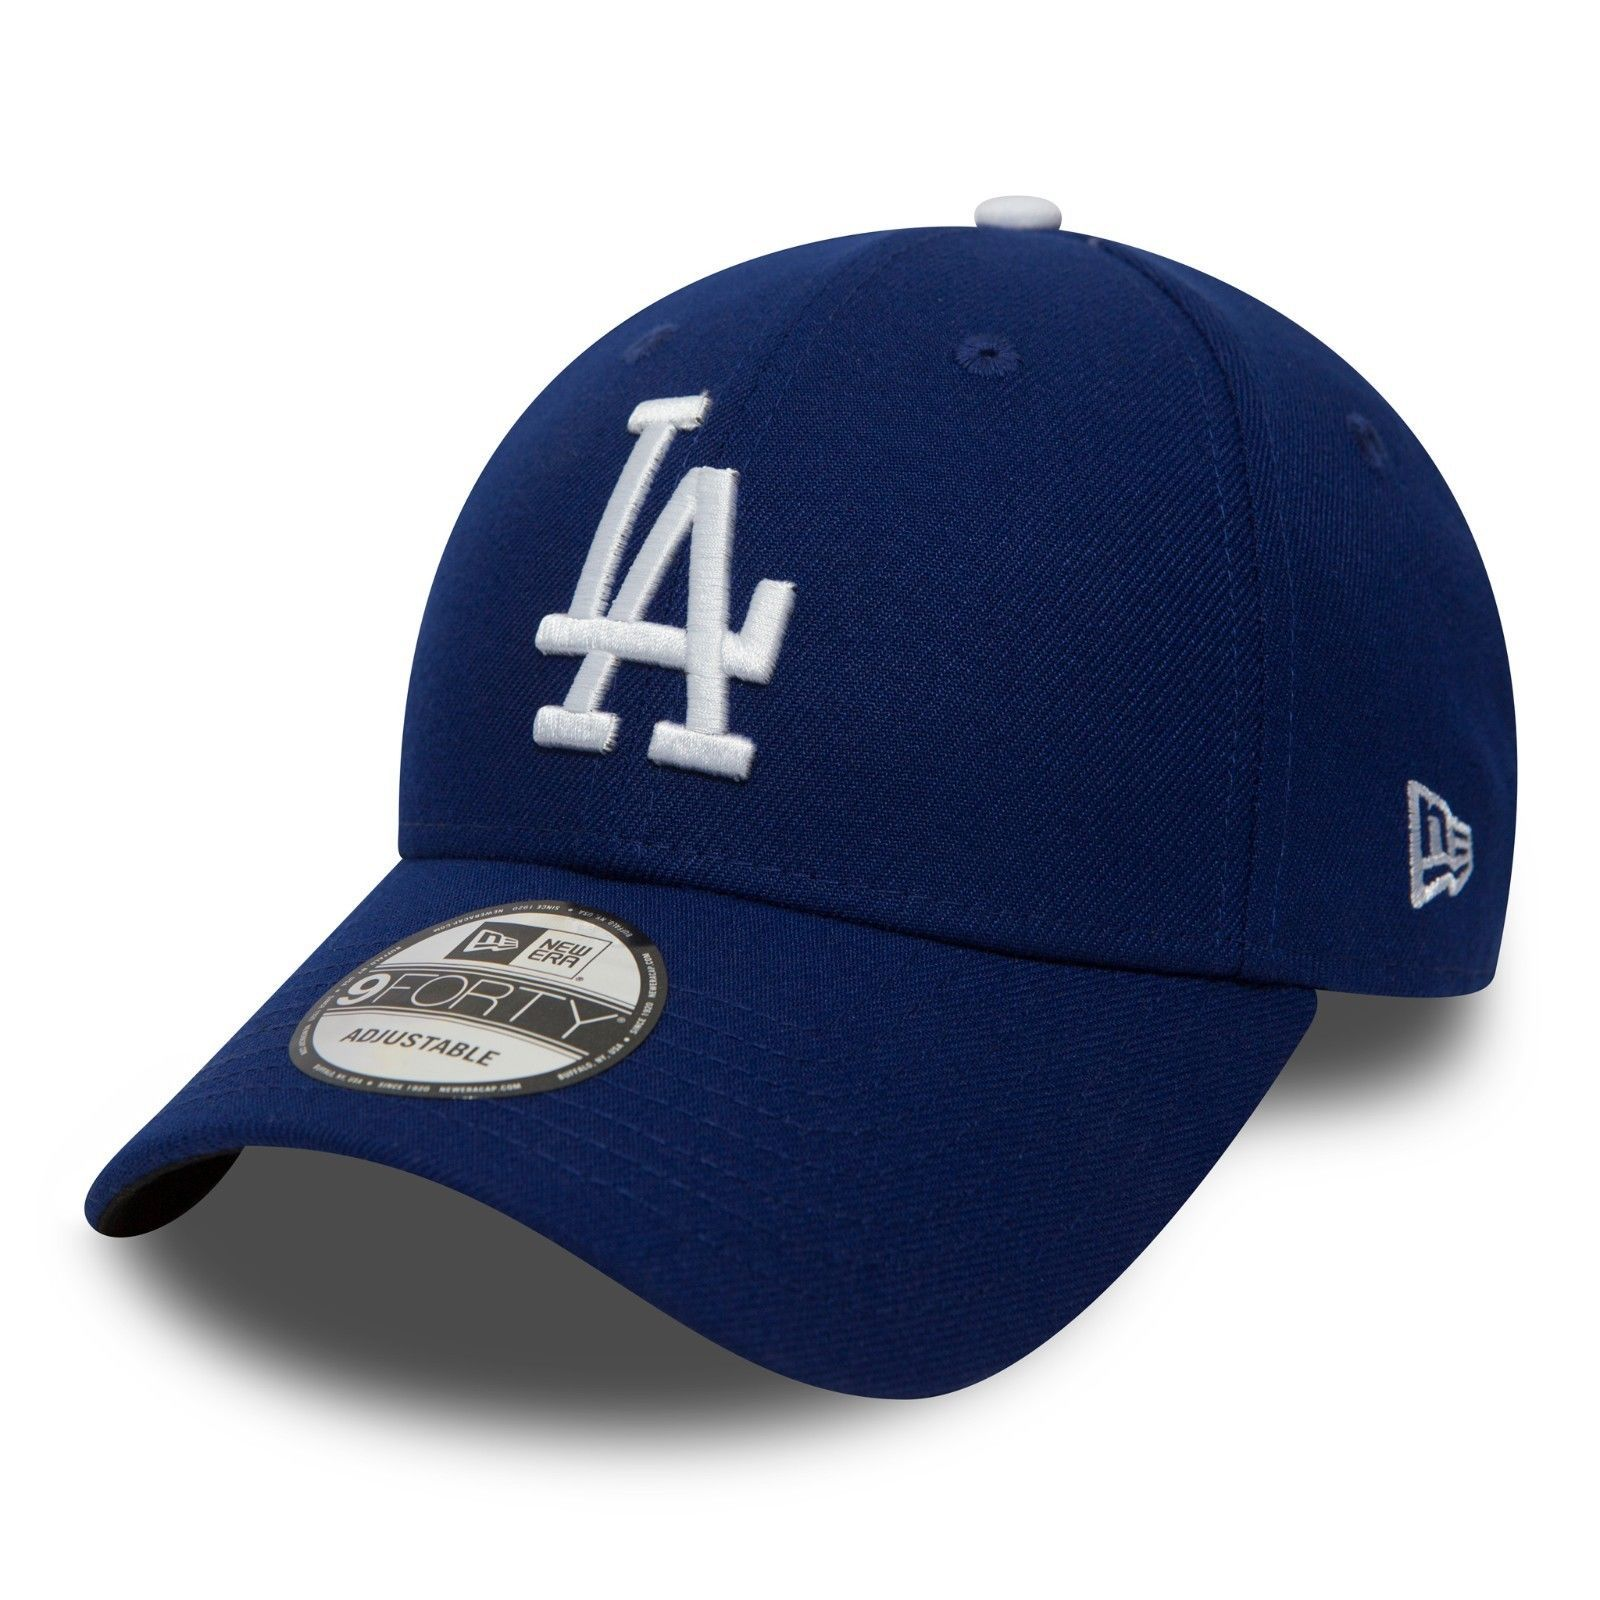 new-era-mens-9forty-baseball-cap.mlb-the-league-la-dodgers-blue-adjustable- hat-1-119777-p.jpg b5615e730d9